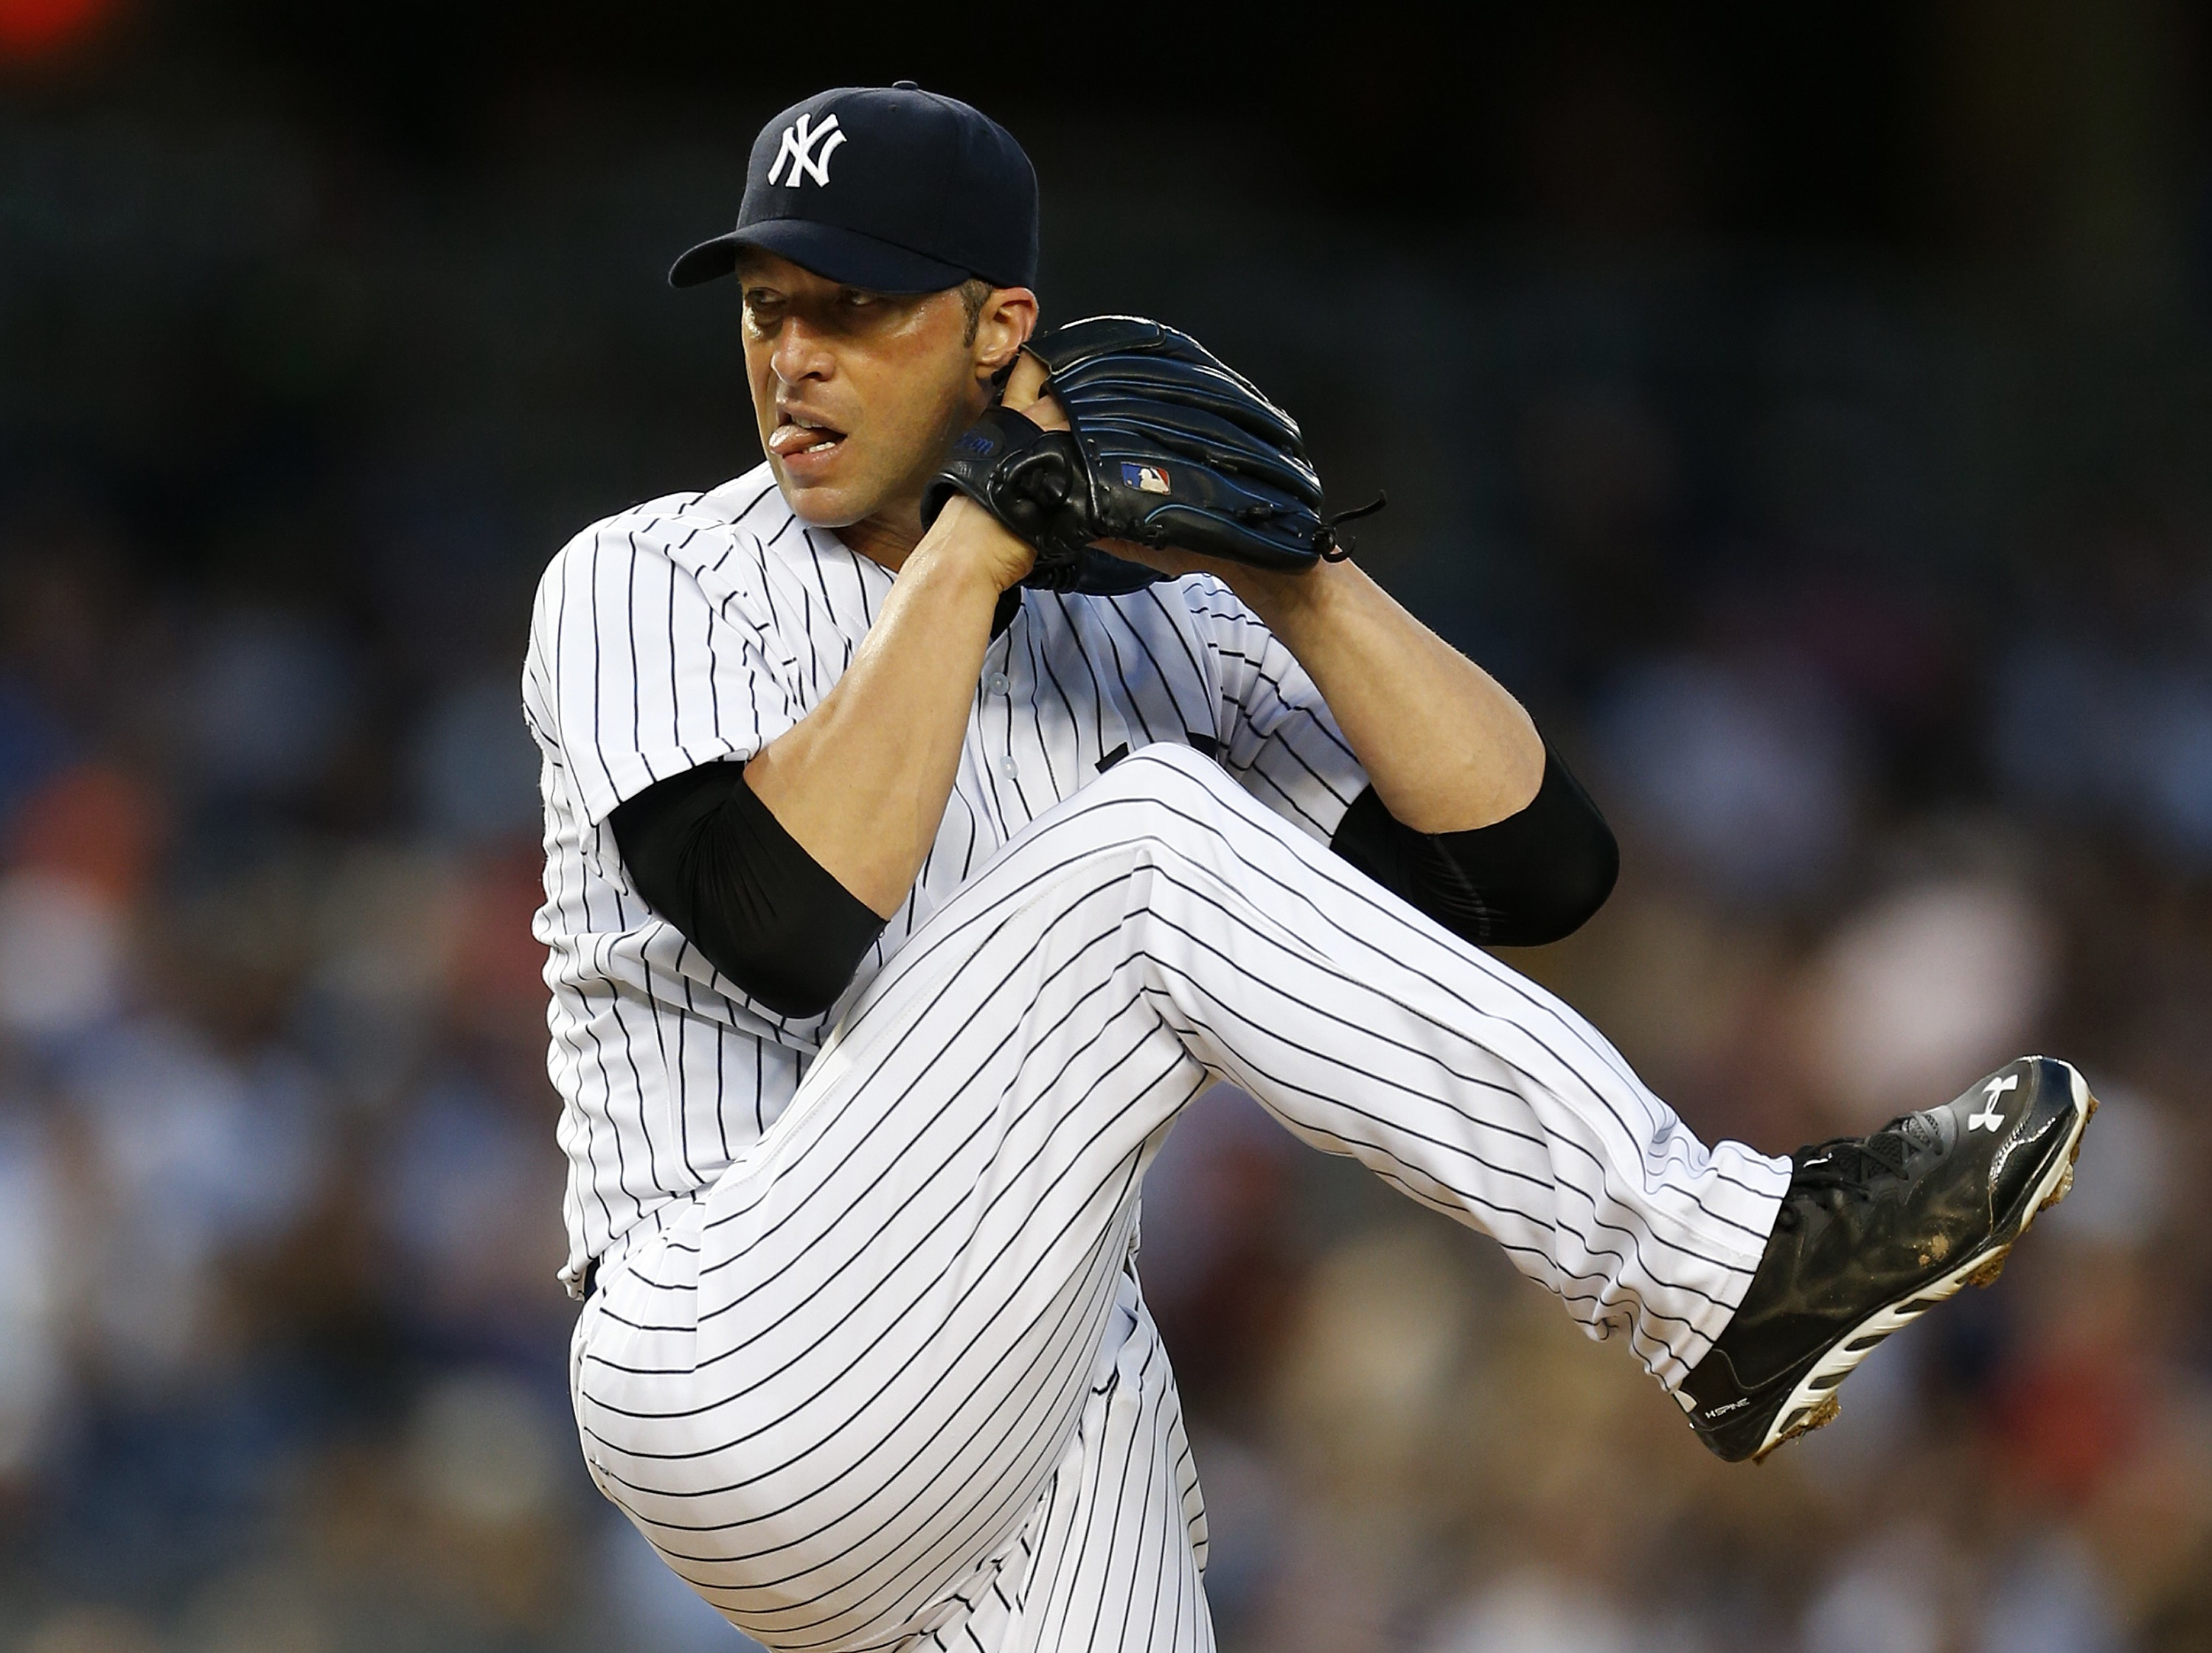 Why Can't Red Sox Get Players Like Chris Capuano?